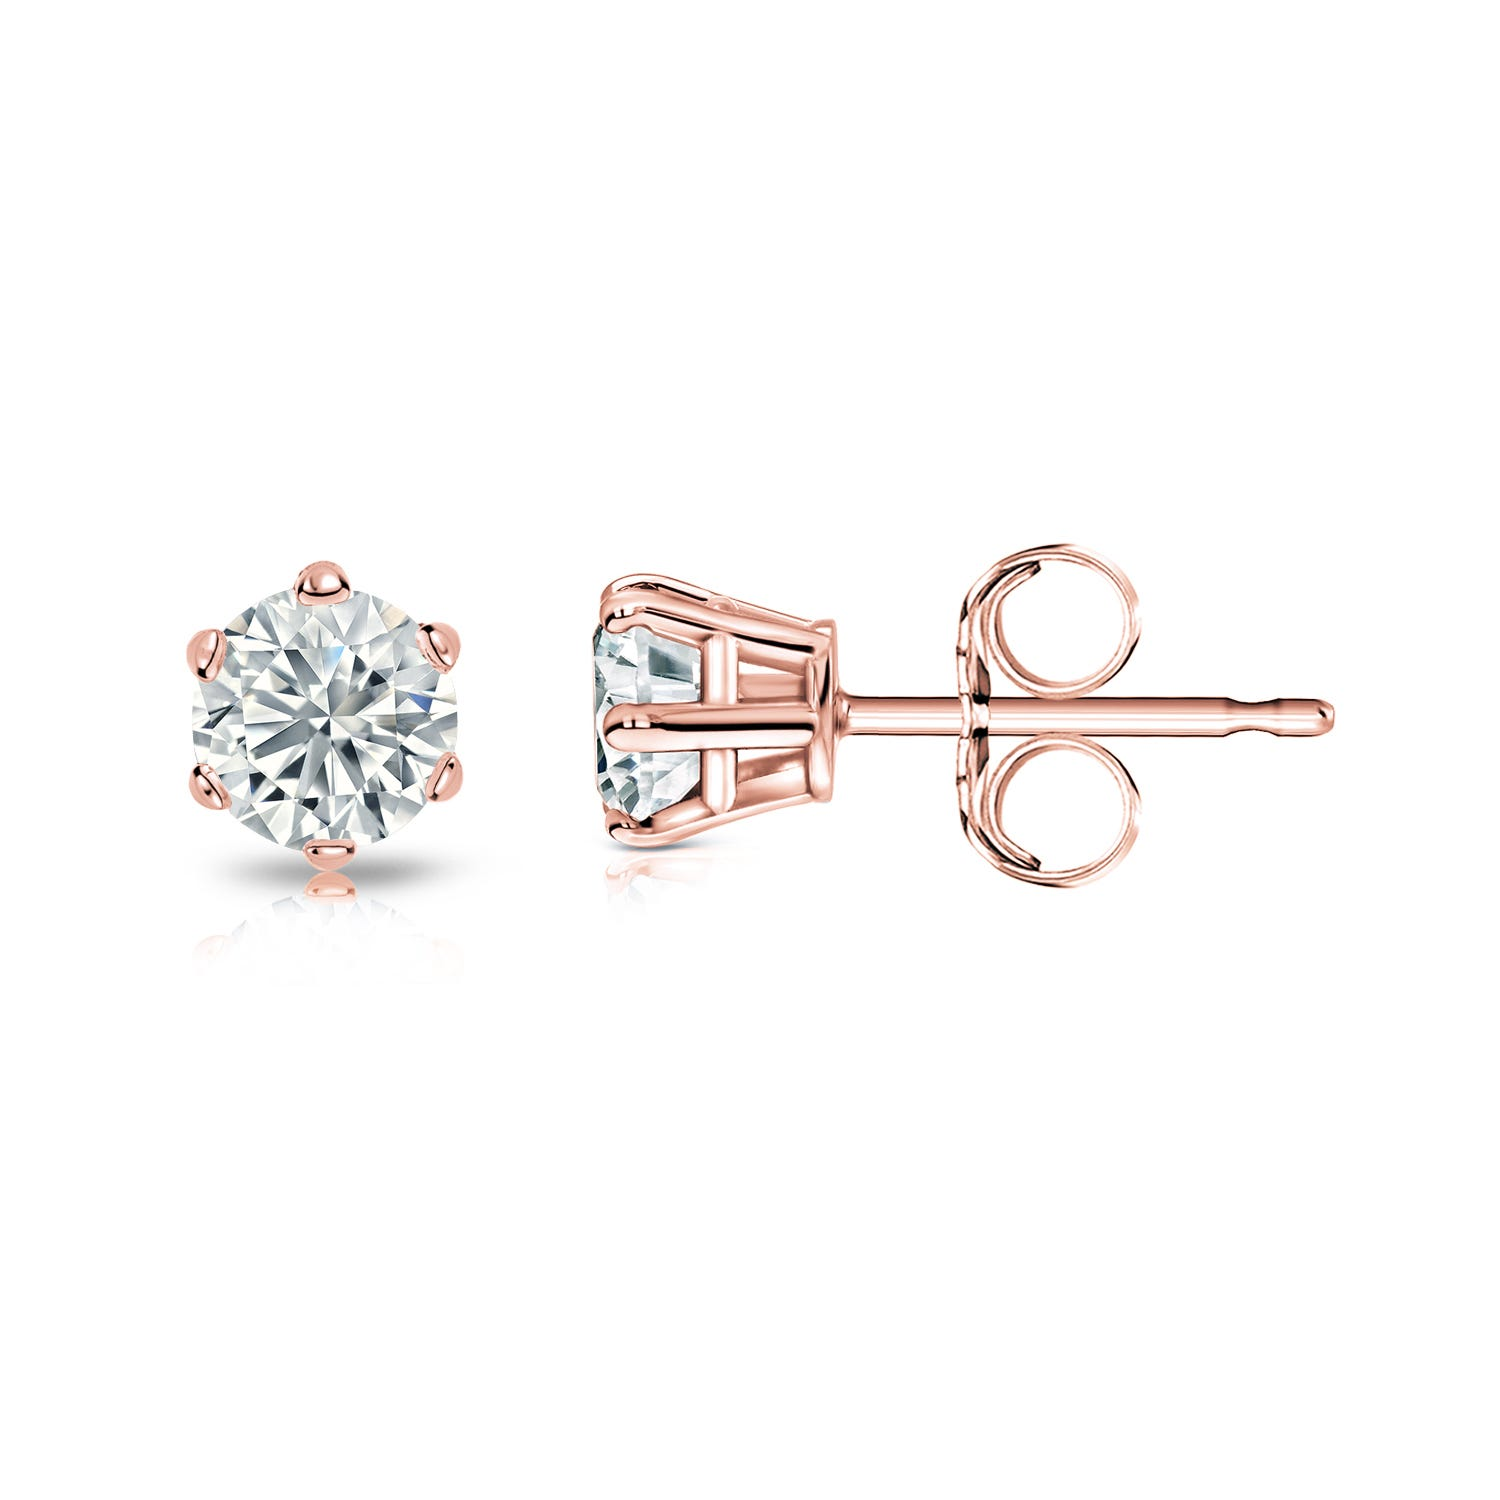 Round Diamond 1/10ctw. (IJ-I2) Solitaire Stud 6-Prong Earrings in 10K Rose Gold